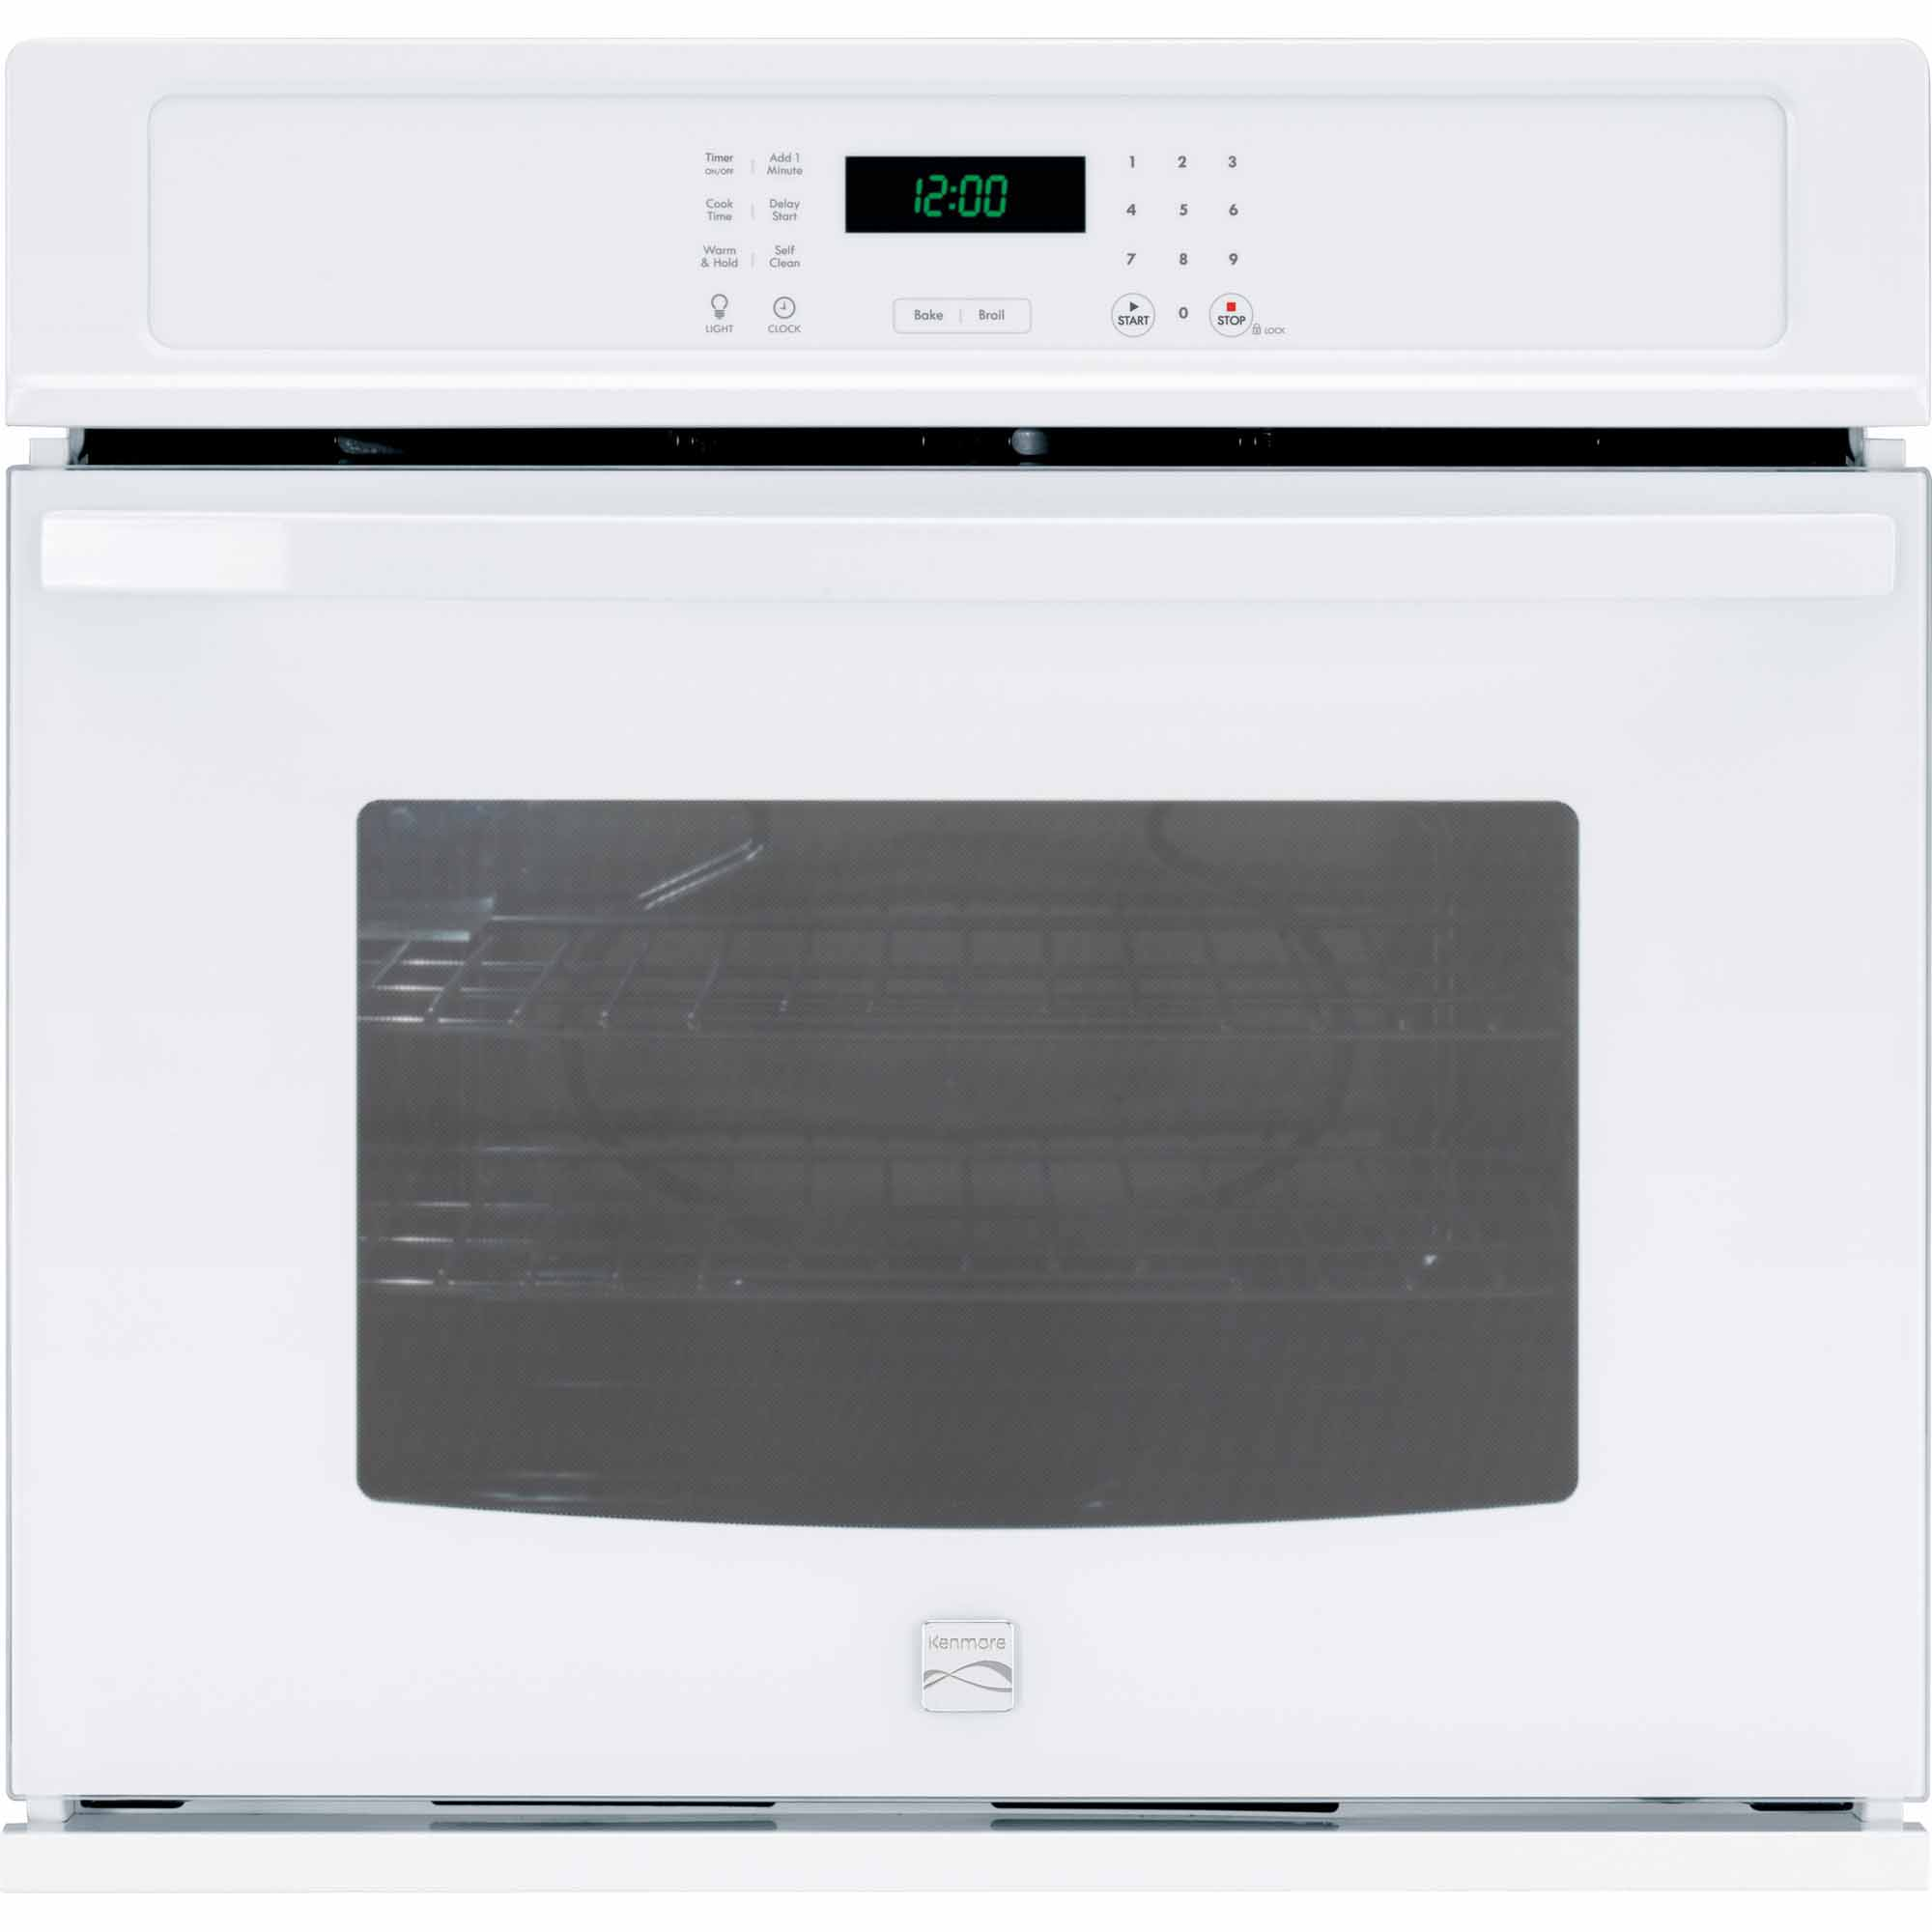 Kenmore 49422 30 Electric Self-Clean Single Wall Oven - White